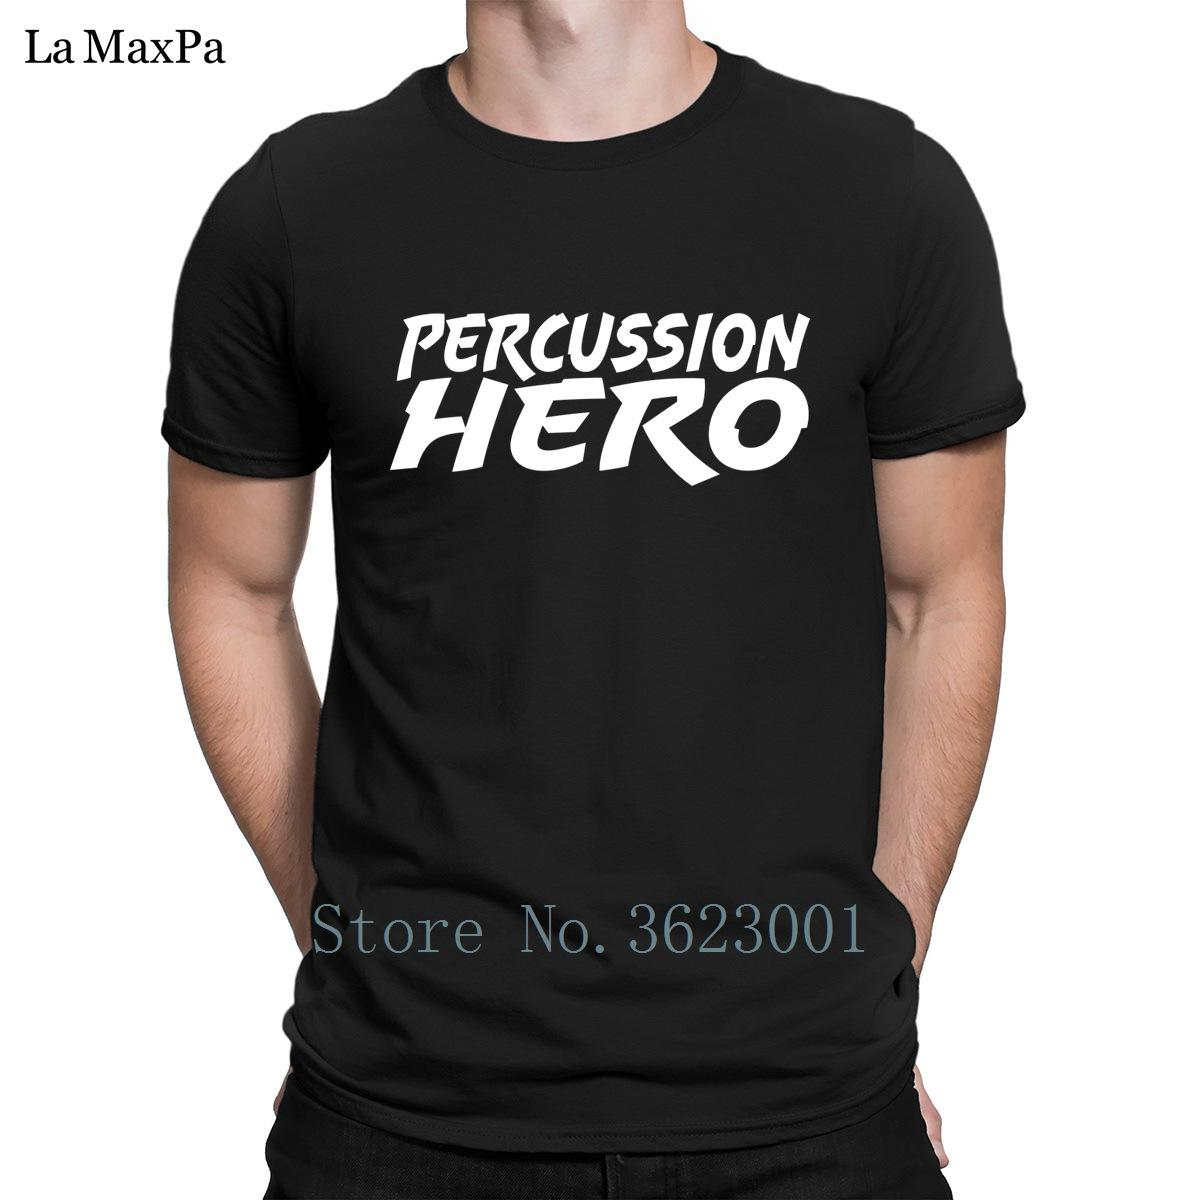 Funny Letters T Shirt Homme Percussion Hero T-Shirt For Men Building Trendy Men Tshirt Plus Size Tee Shirt Fitness